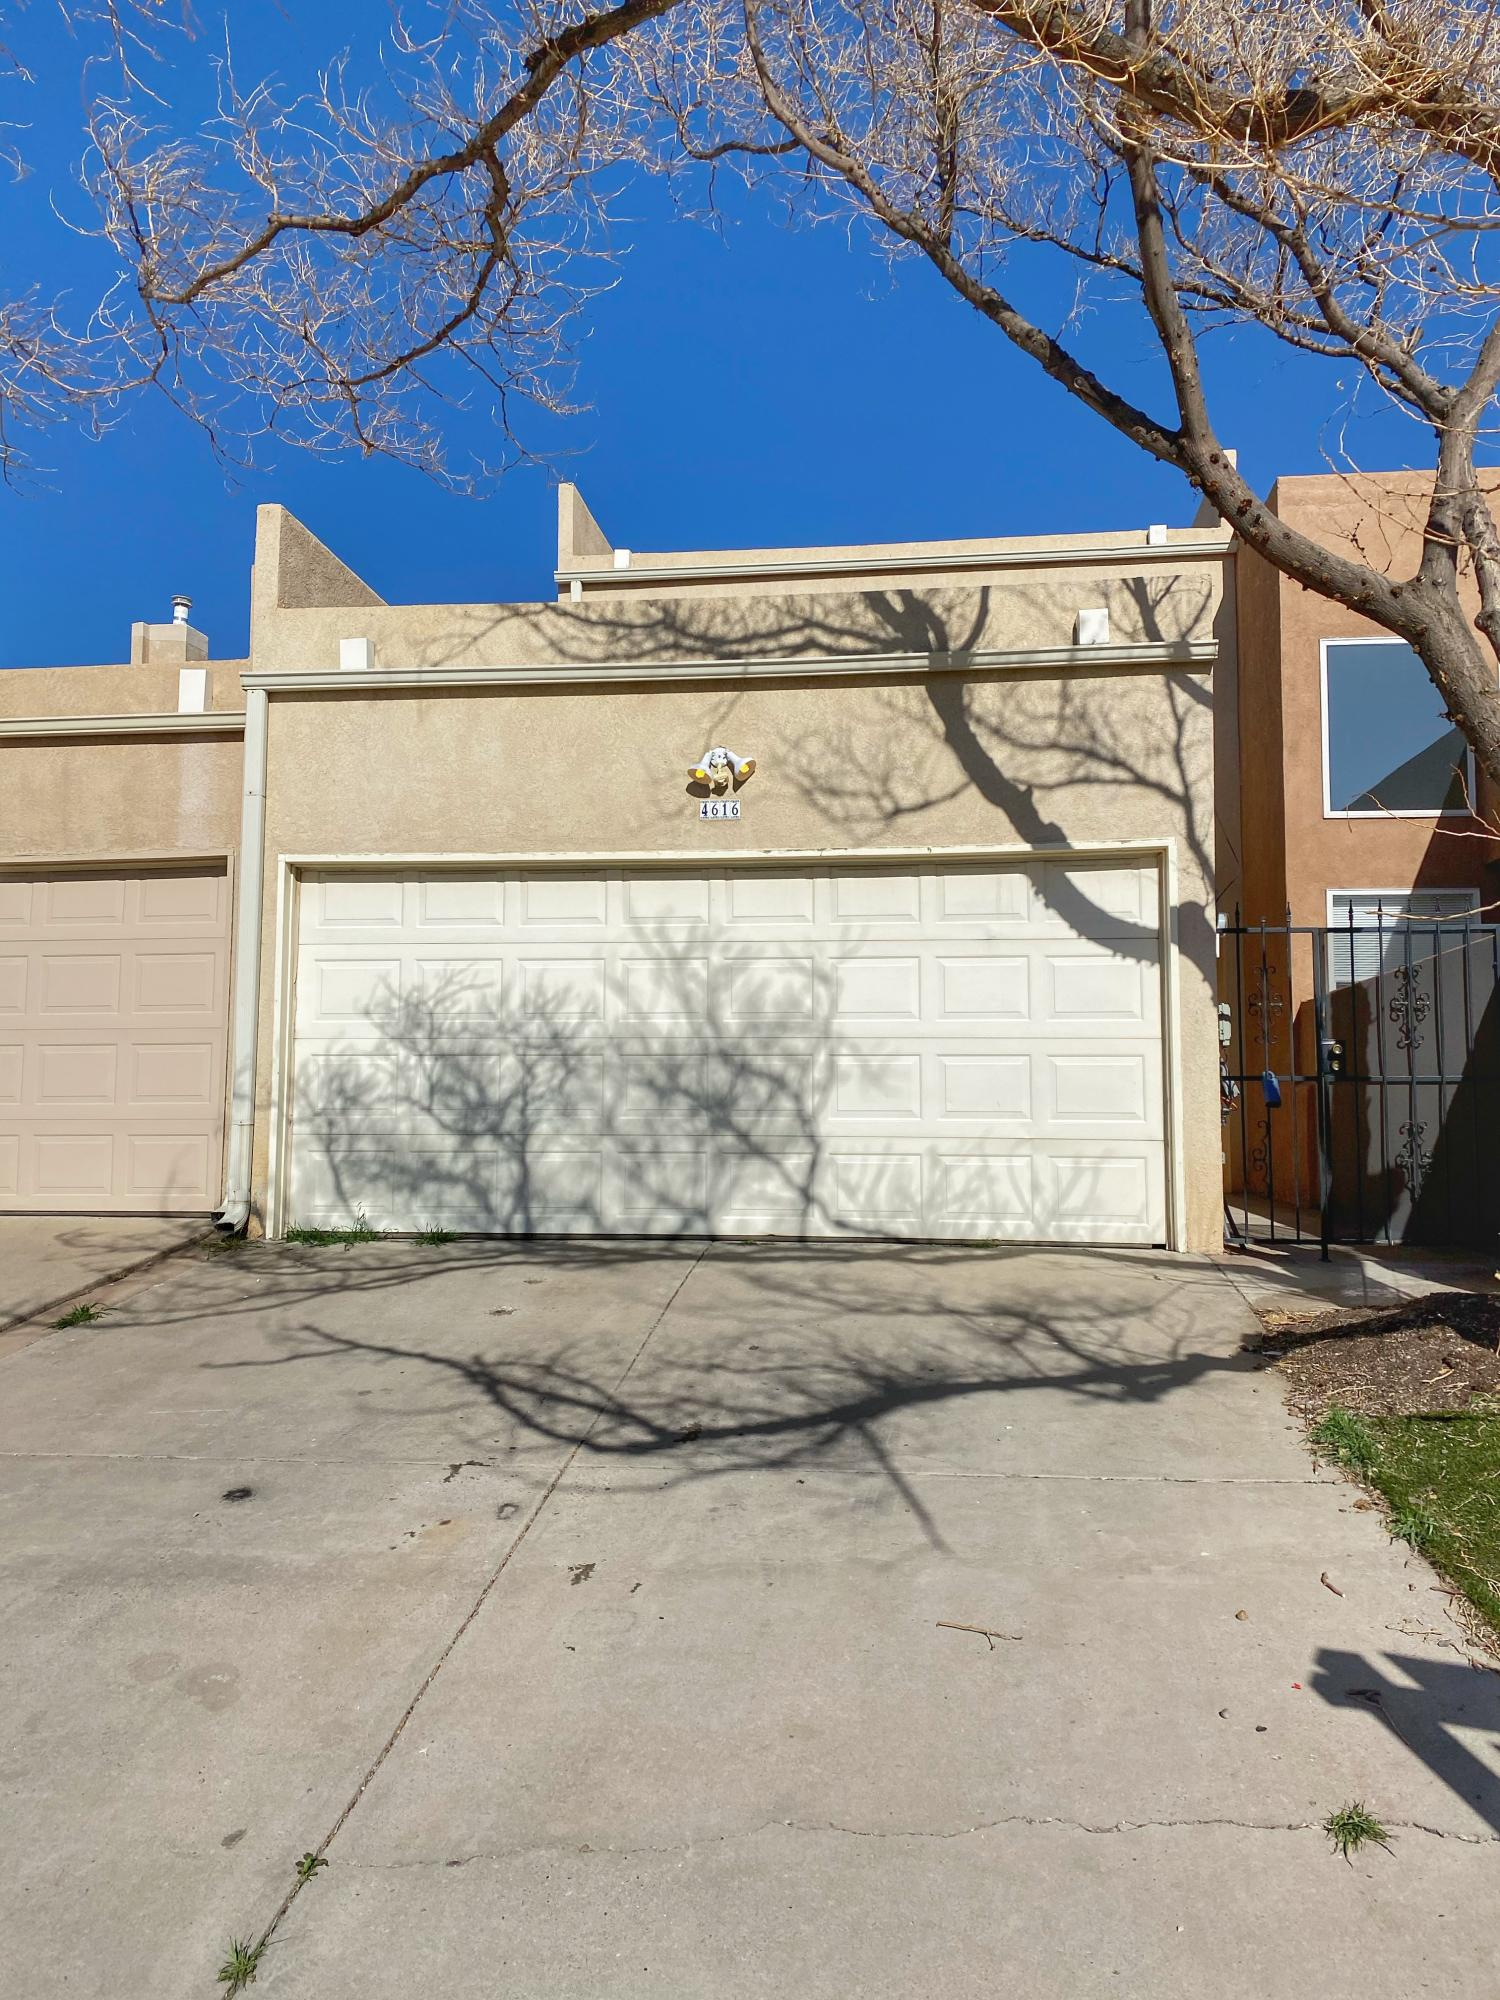 Great opportunity Town Home in Canyon Breeze. Home features - Living Room with fireplace, kitchen with dining nook, downstairs bedroom/office, master bedroom and additional bedroom upstairs. Spacious backyard with covered patio. Recently replaced hot water heater and furnace. Home is in need of carpet, paint and some repairs.